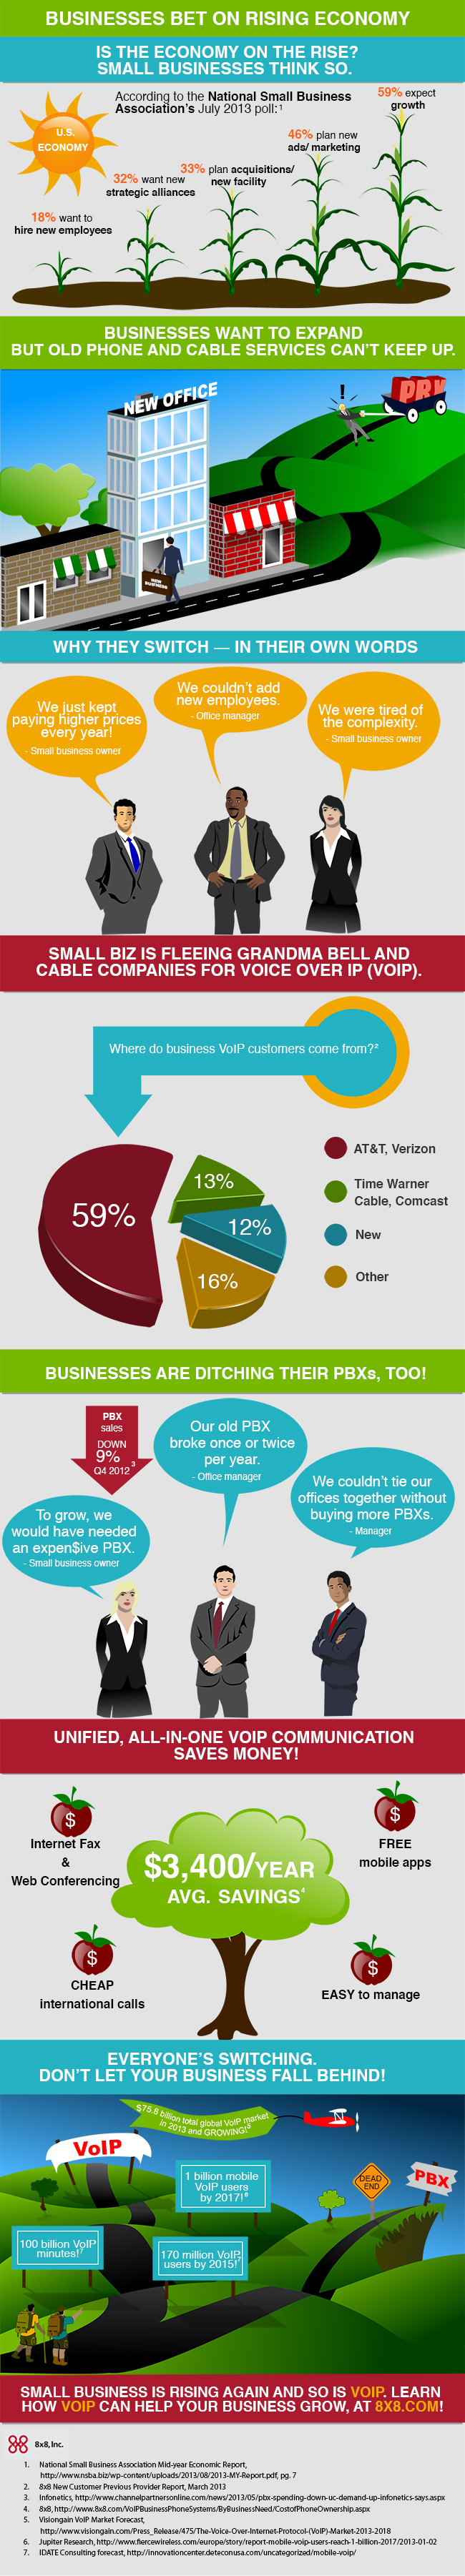 VoIP Business Phone Service Infographic